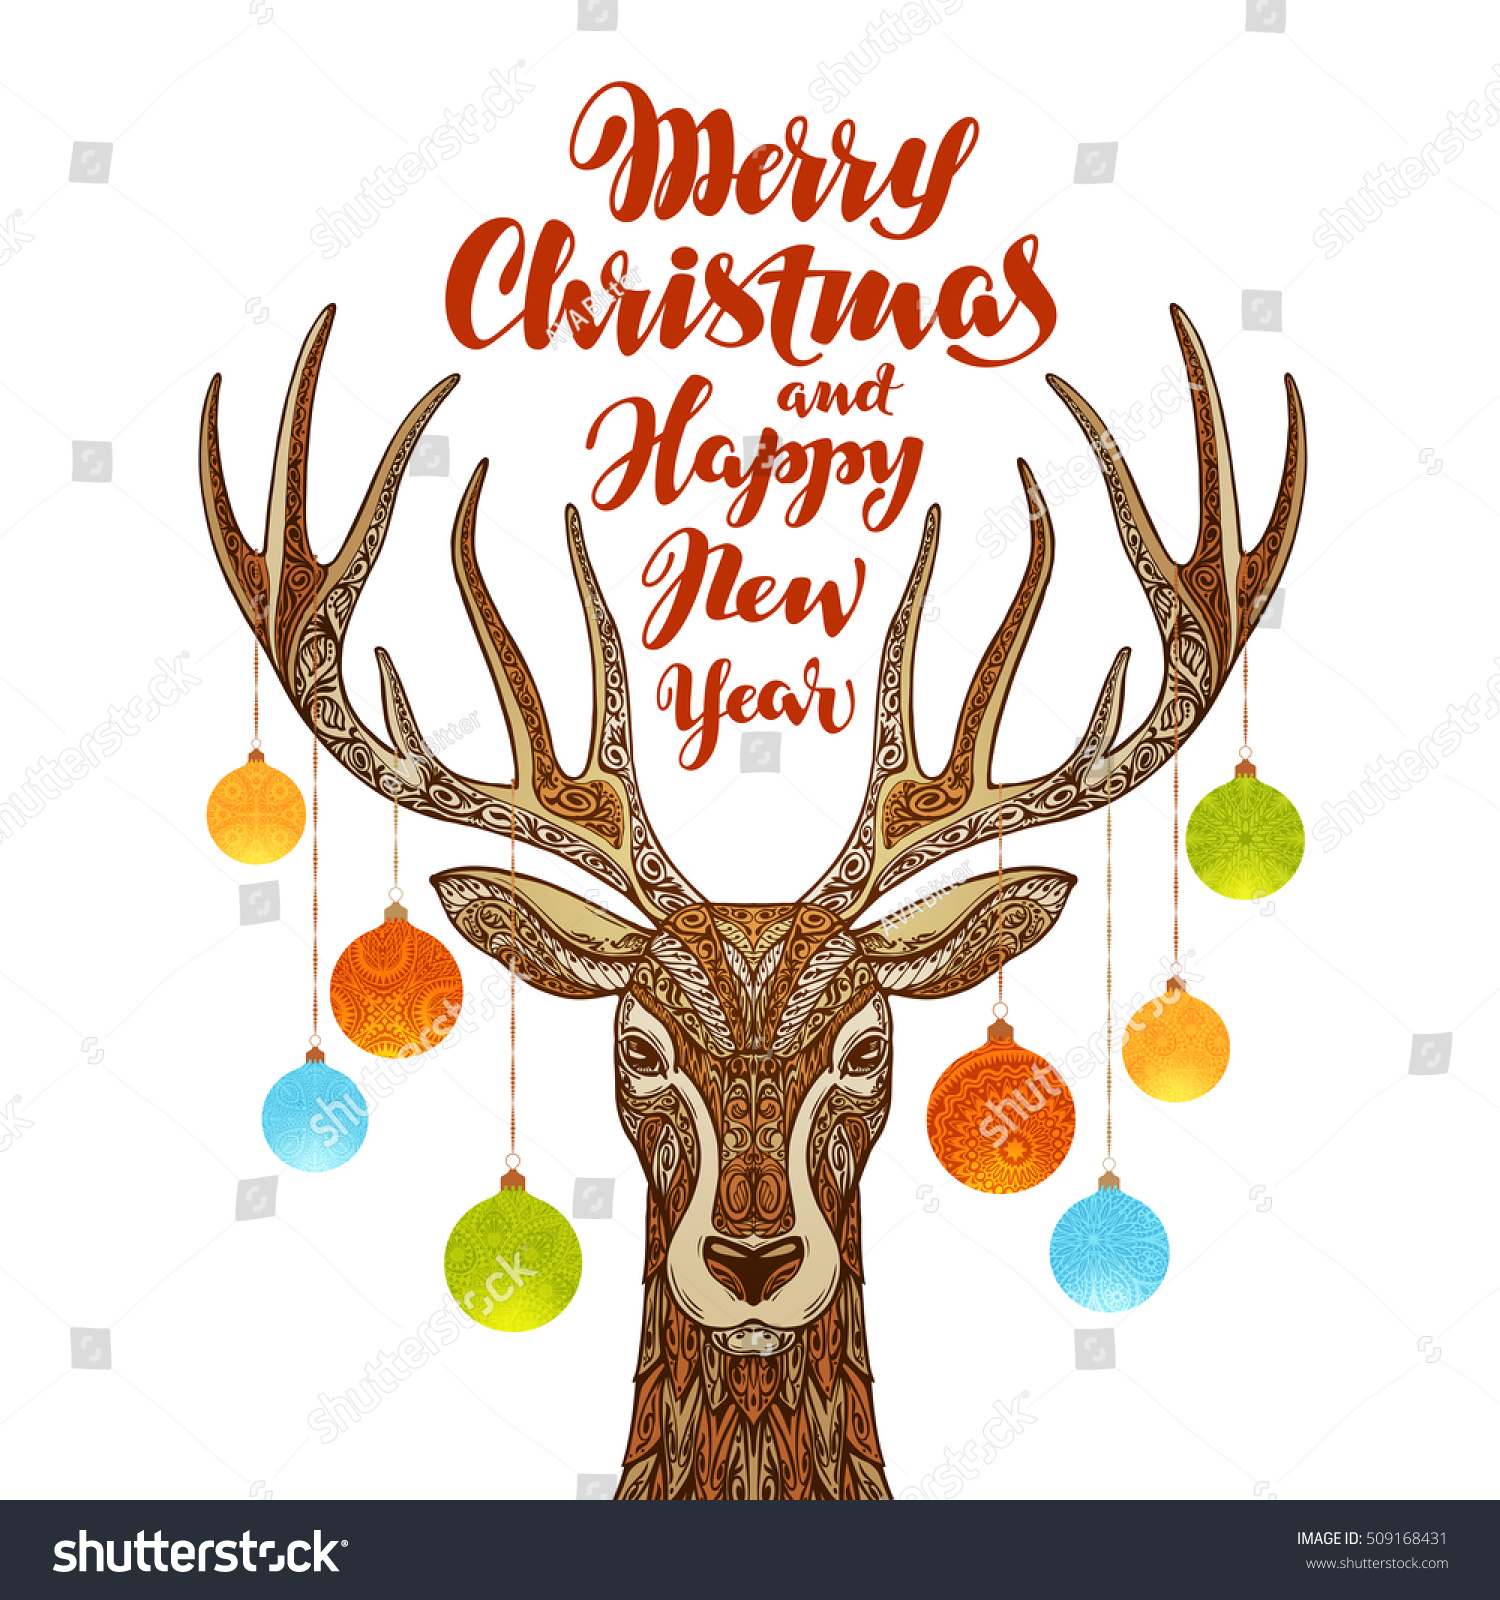 merry christmas happy new year reindeer stock vector royalty free